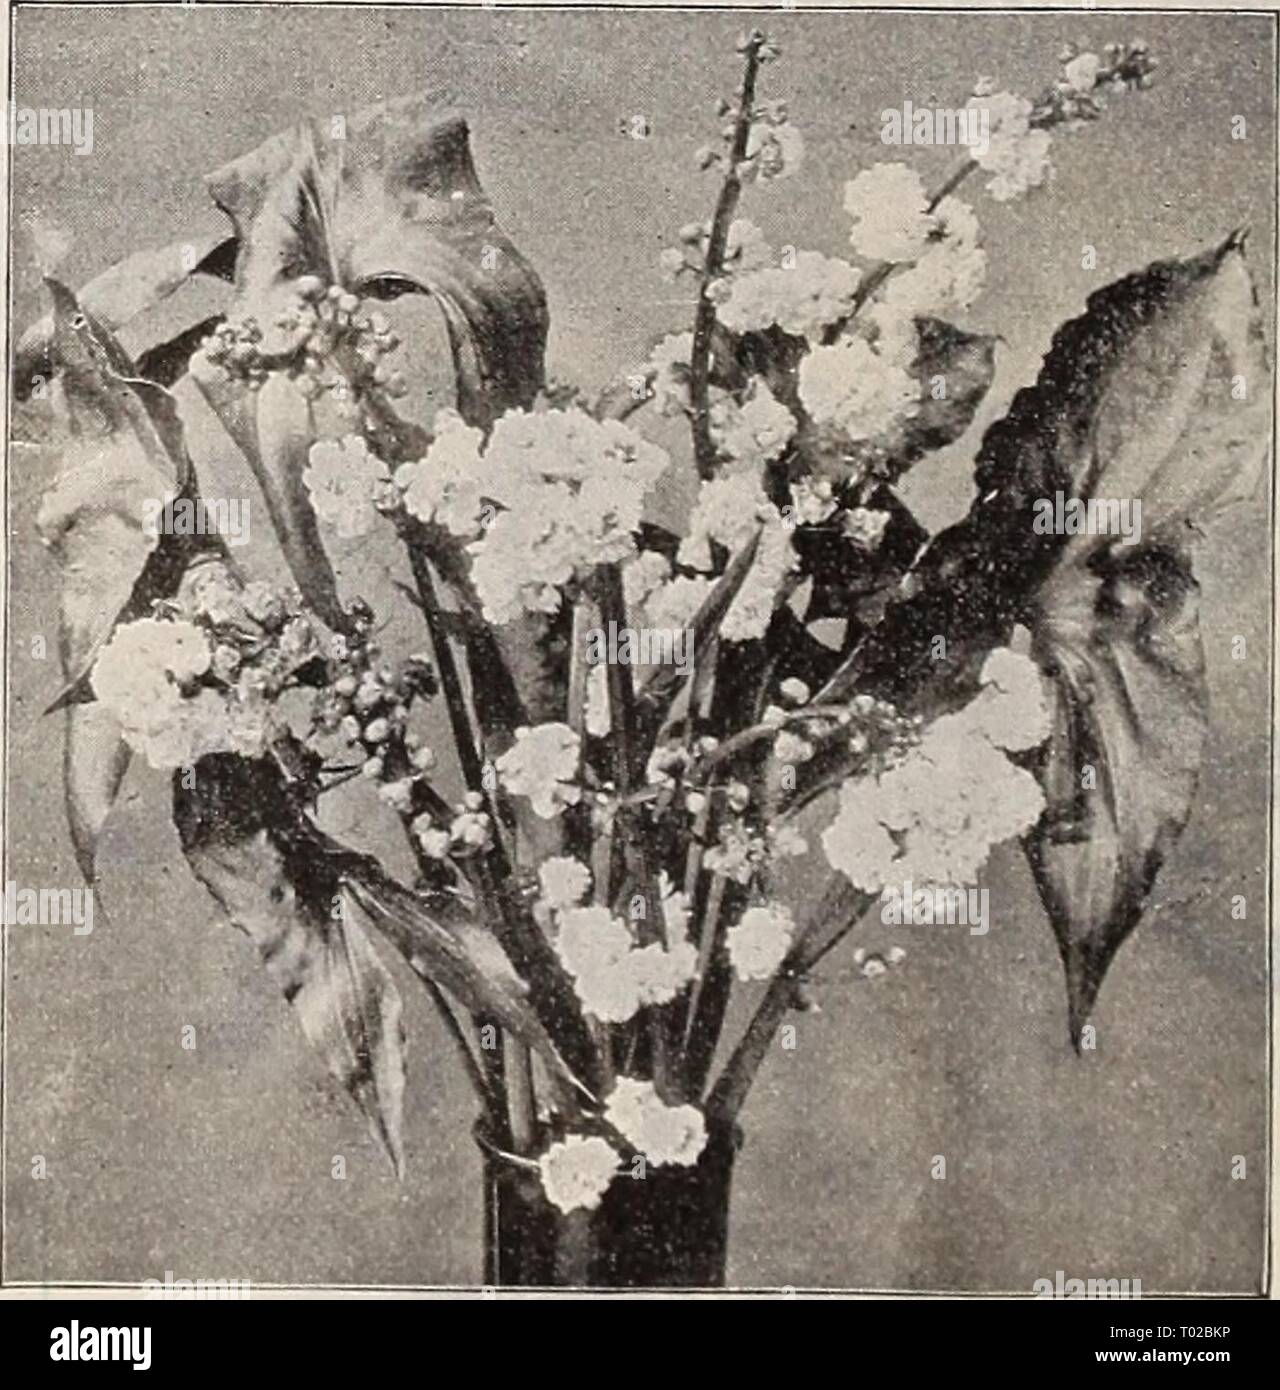 Dreer's garden calendar : 1899 . dreersgardencale1899henr Year: 1899  Ouvirandra Fenestralis. fliSCellaneOUS AquatiCS.—Hardy Varieties. Acorus Japonica Variegata (Variegated Sweet Flag). The foliage of this plant is beautifully striped with white. It grows well in moist soils. One of the finest variegated plants in cultivation. 25 cts. each ; $2-50 per doz. Acorus Gramineus Variegatus. Dwarf growing, with leathery leaves, beautifully margined with white ; a handsome plant for margins or pot culture. 20 cts. each. Brasenia Peltata (Water Shield). A very pretty plant, suitable for aquariums or e - Stock Image